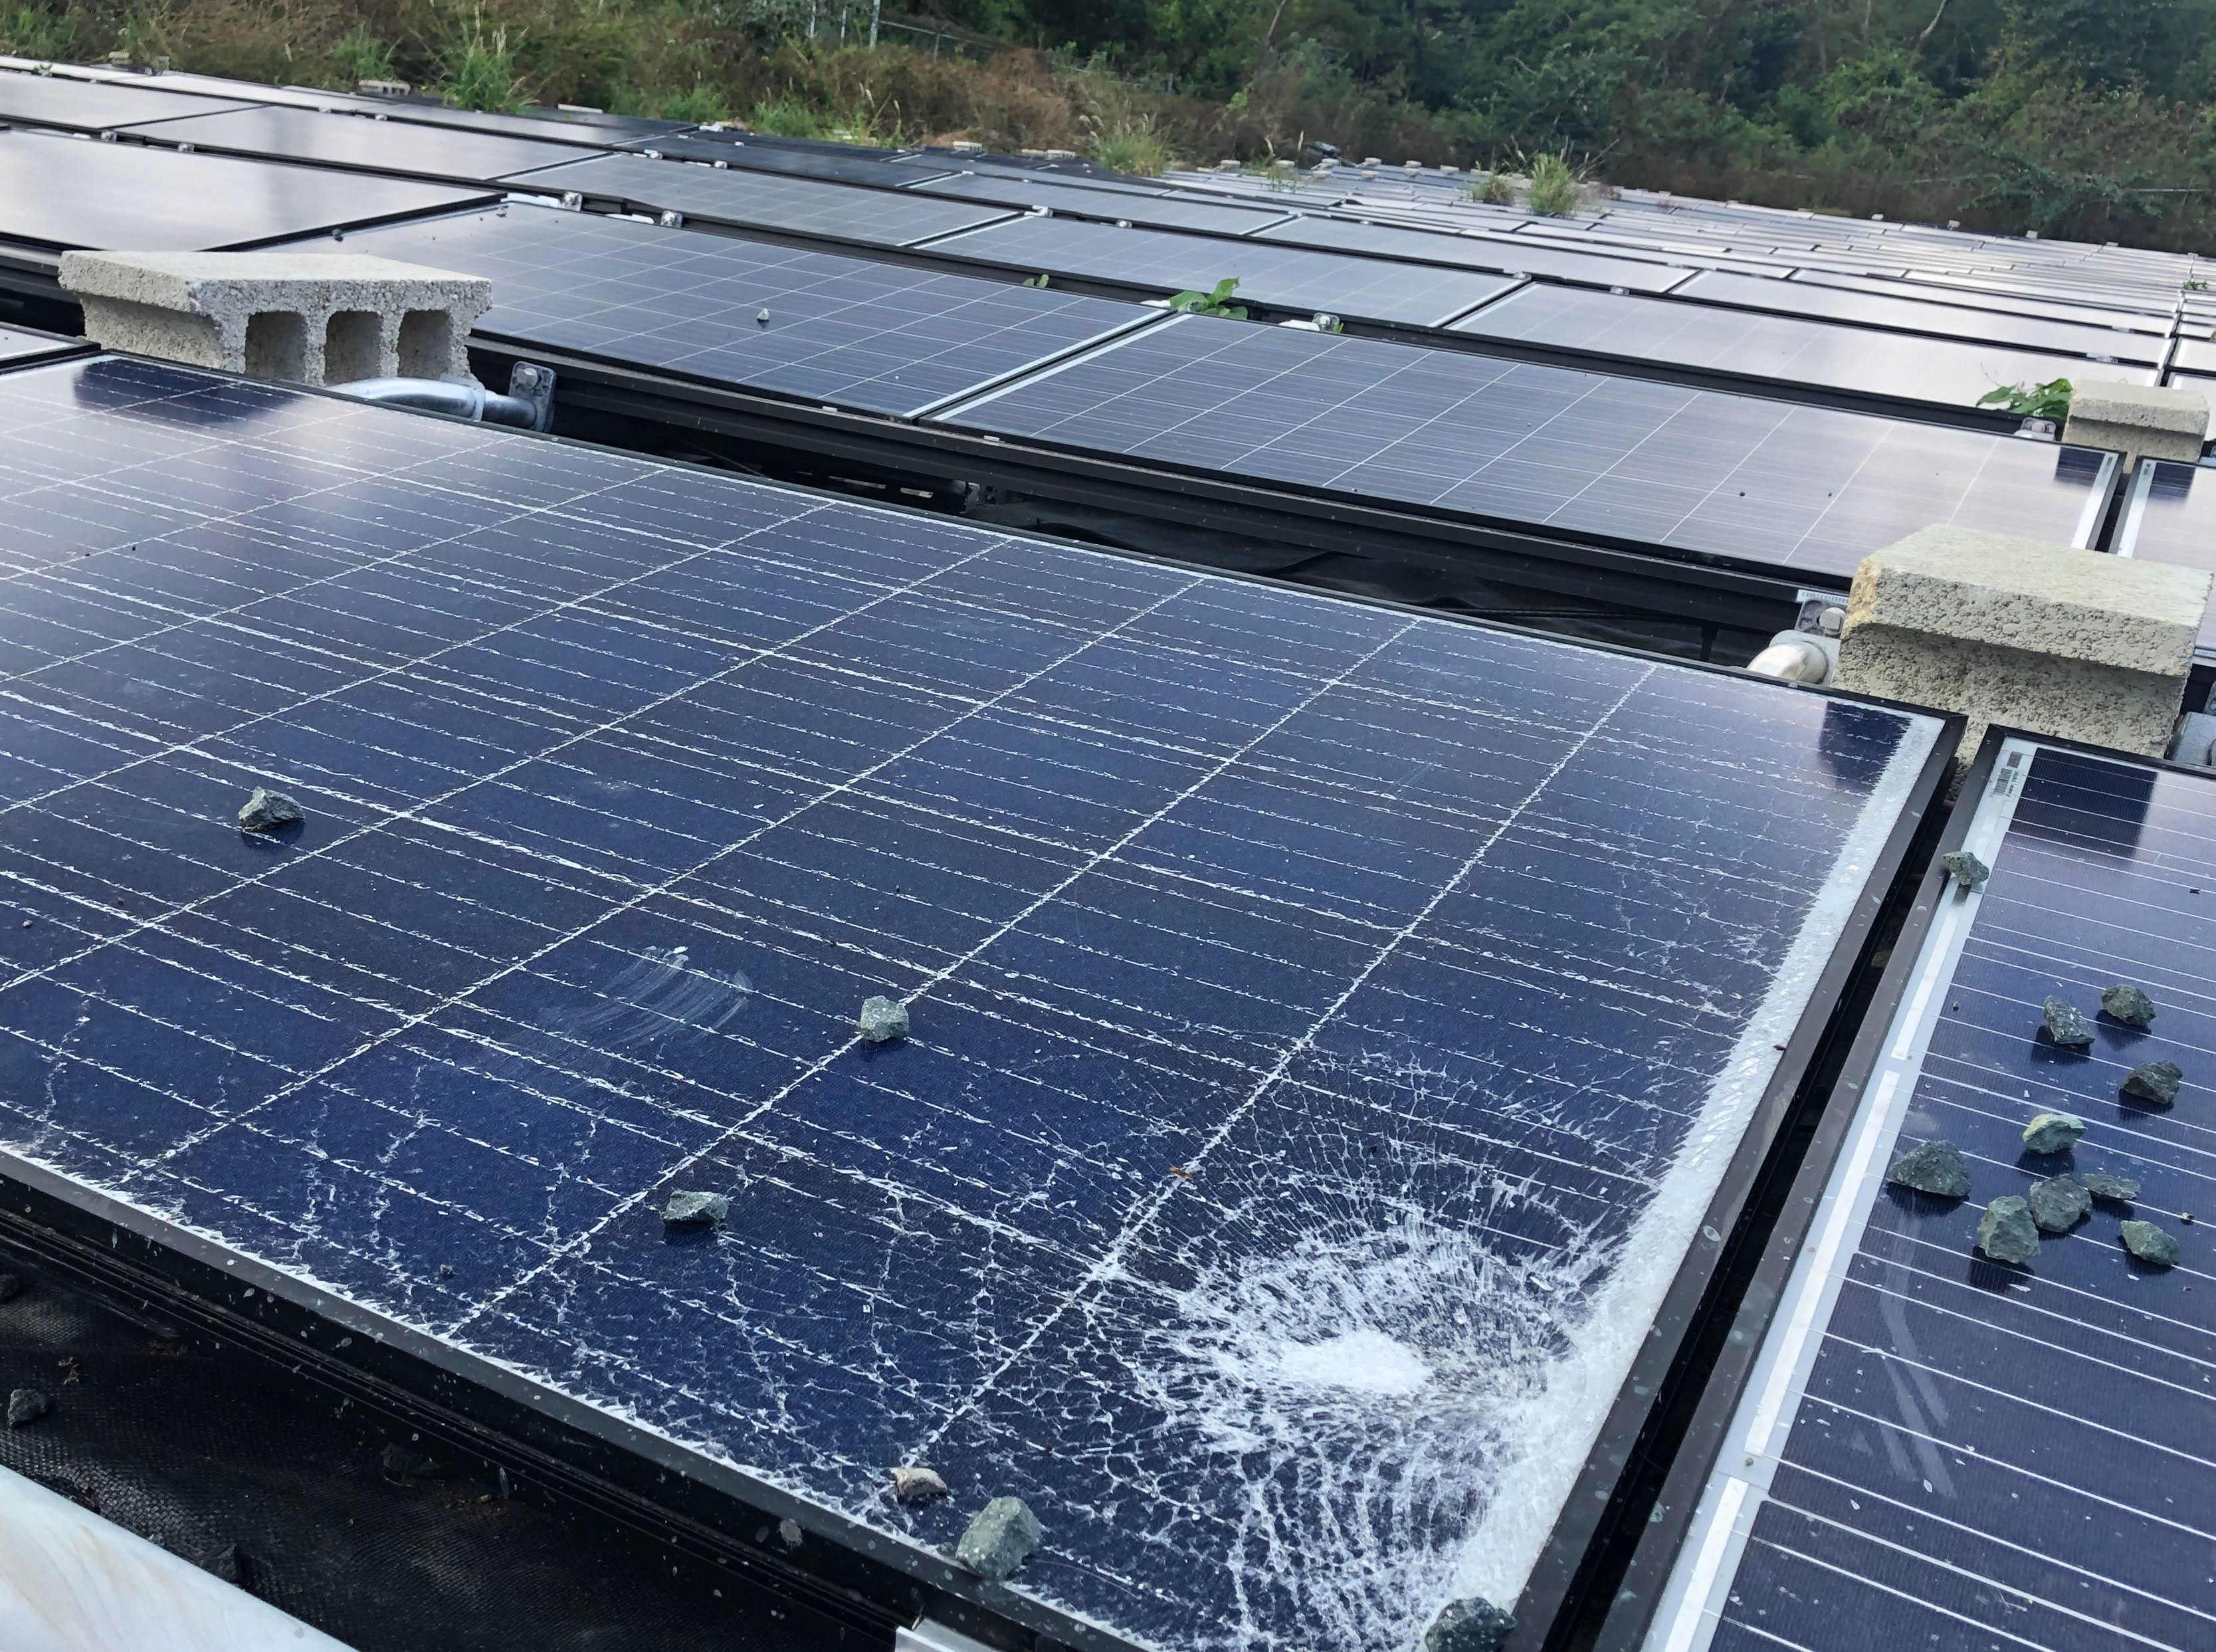 On Puerto Rico's 'Forgotten Island,' Tesla's Busted Solar Panels Tell A Cautionary Tale